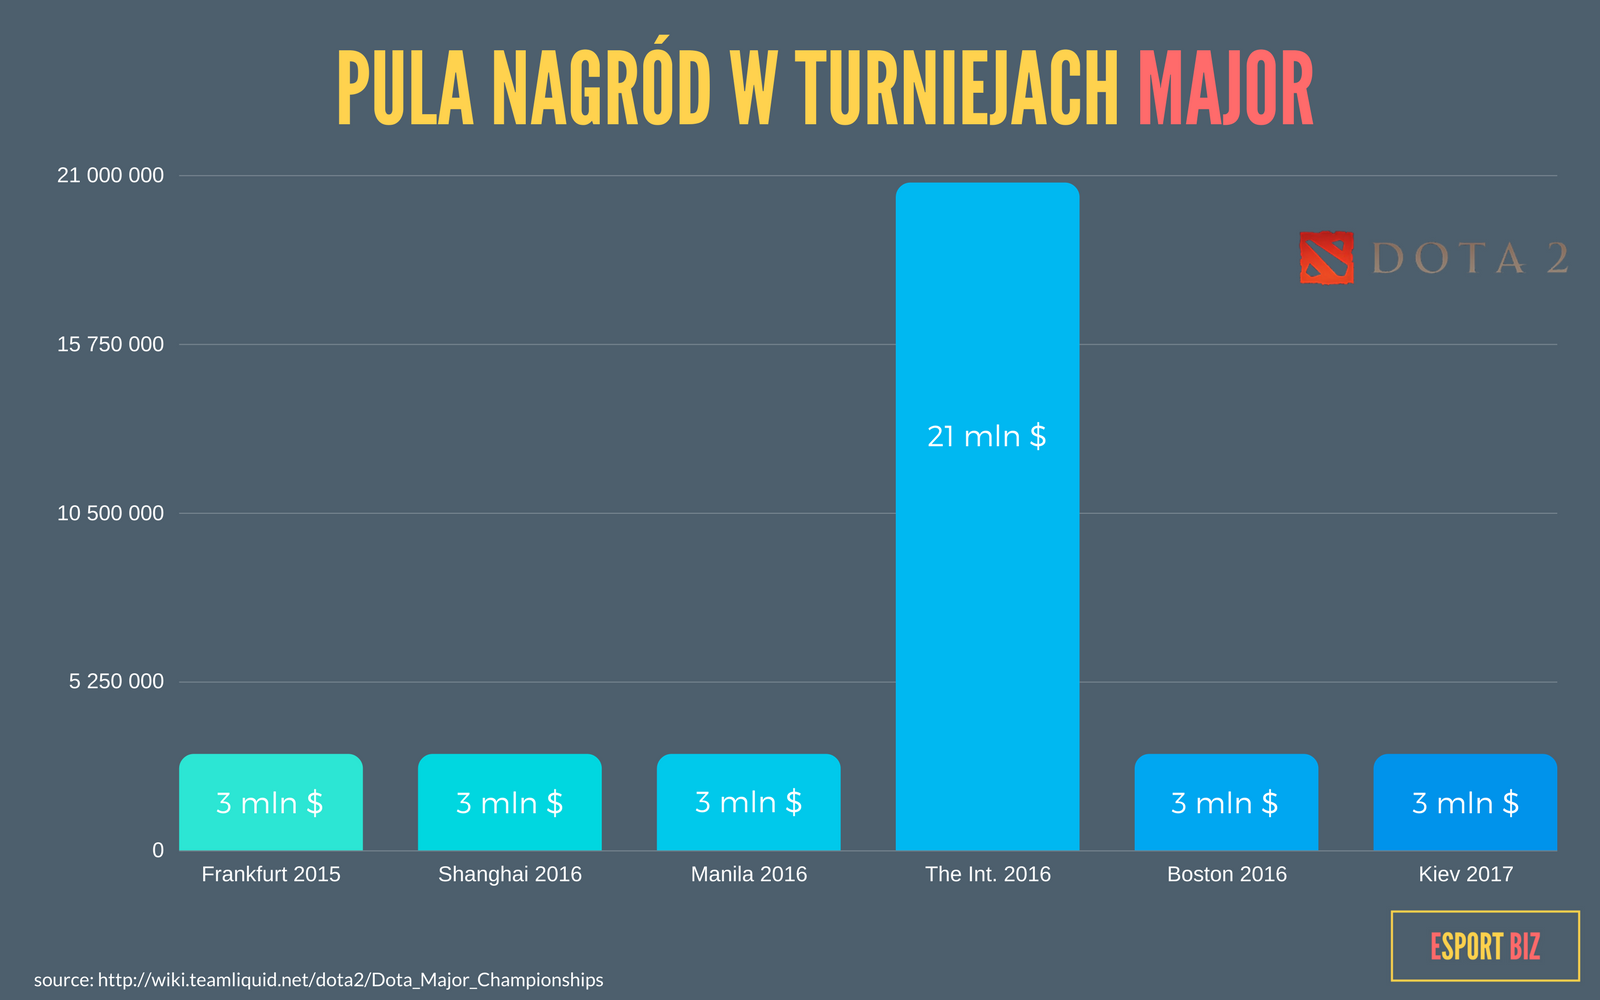 Pula nagrod w turnieajch major